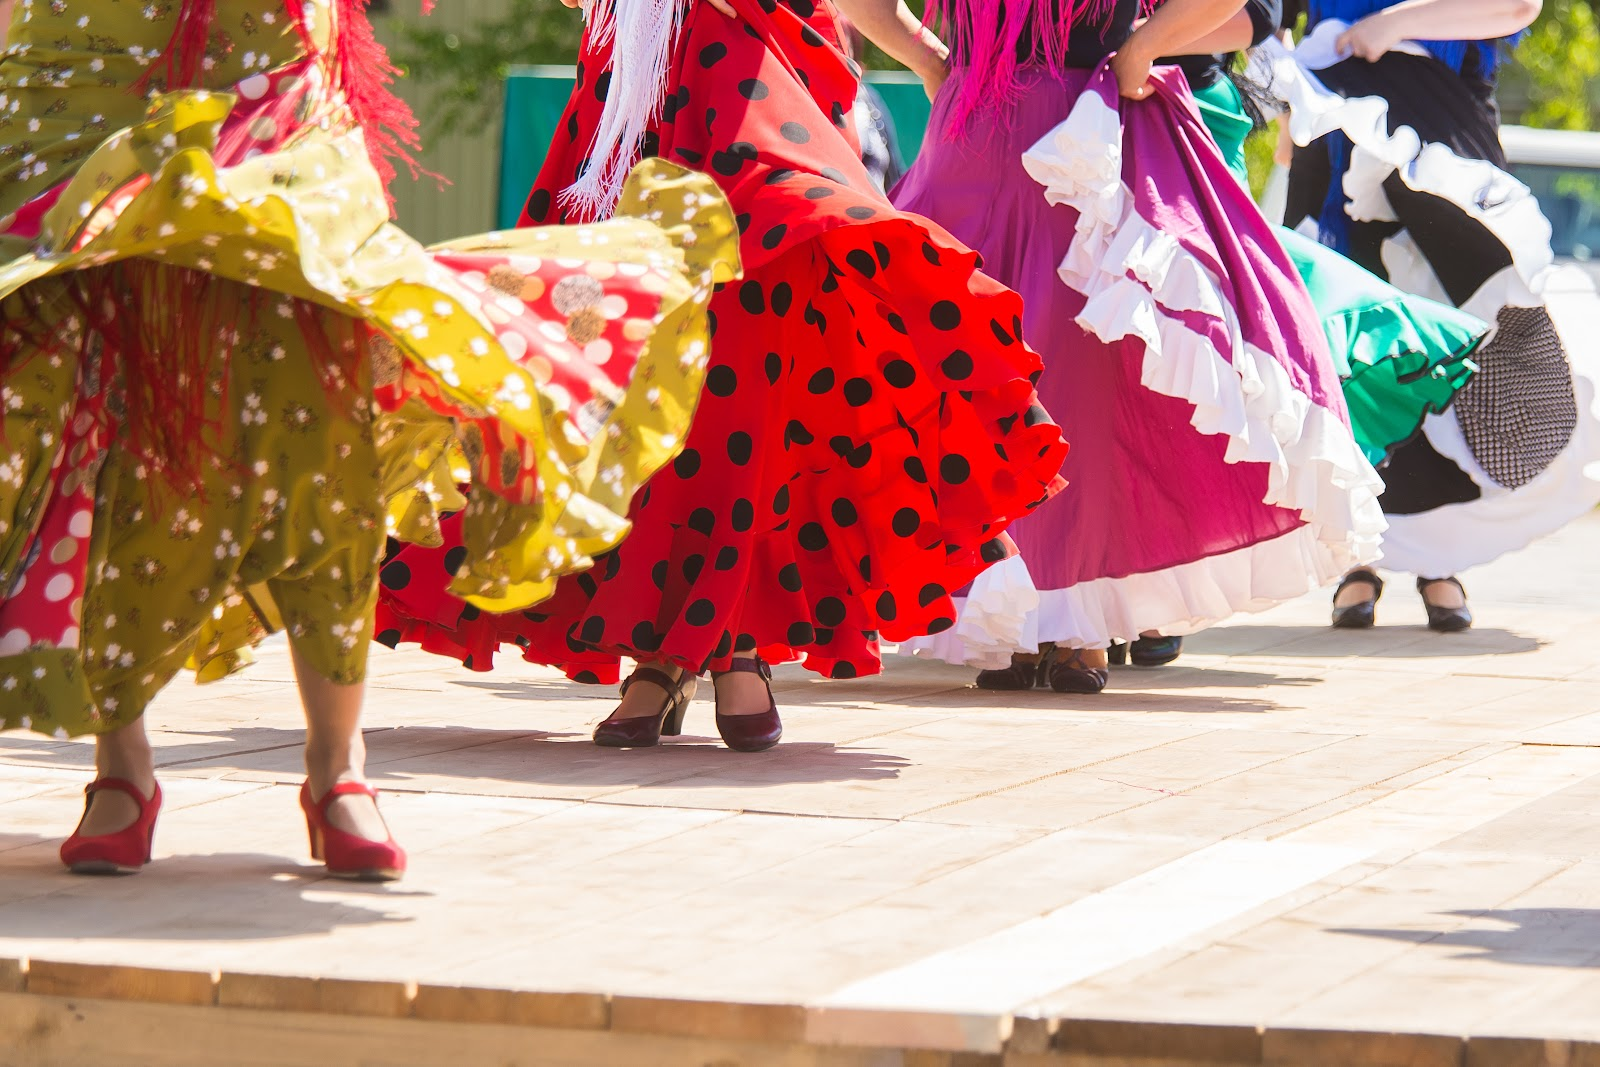 Flamenco dancers dancing with flowy, colorful skirts